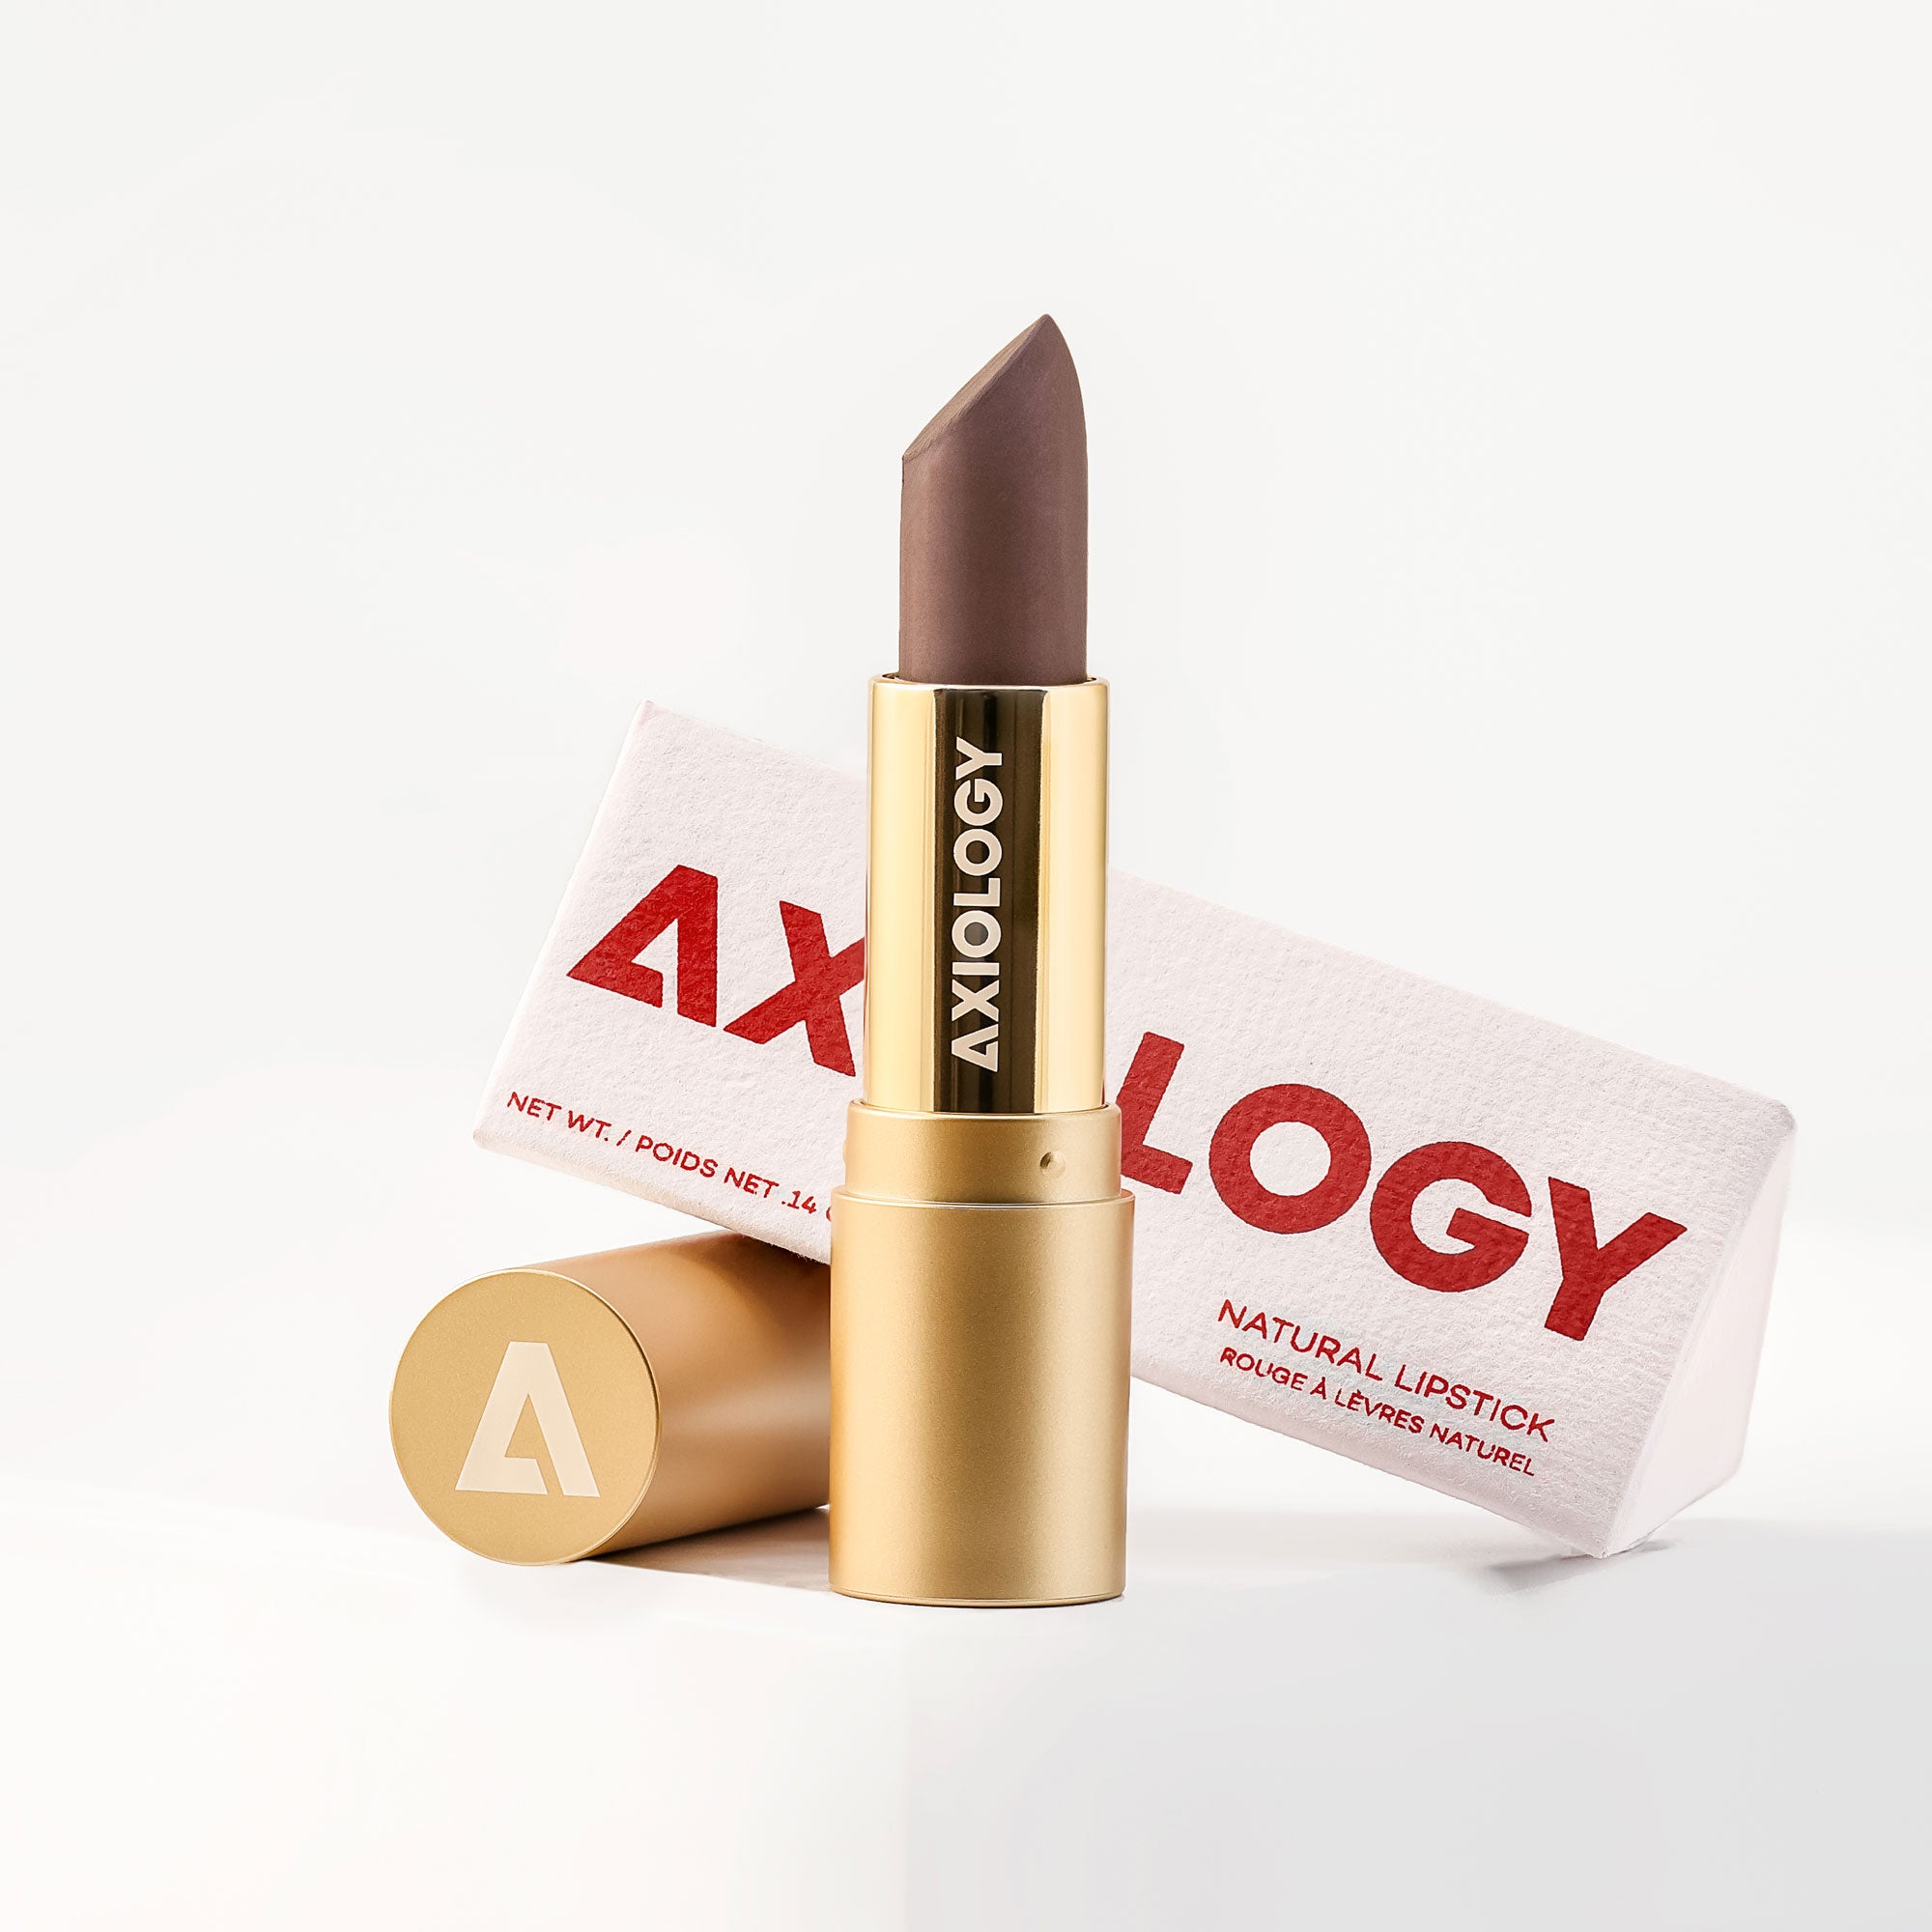 Axiology Beauty BAD 2020